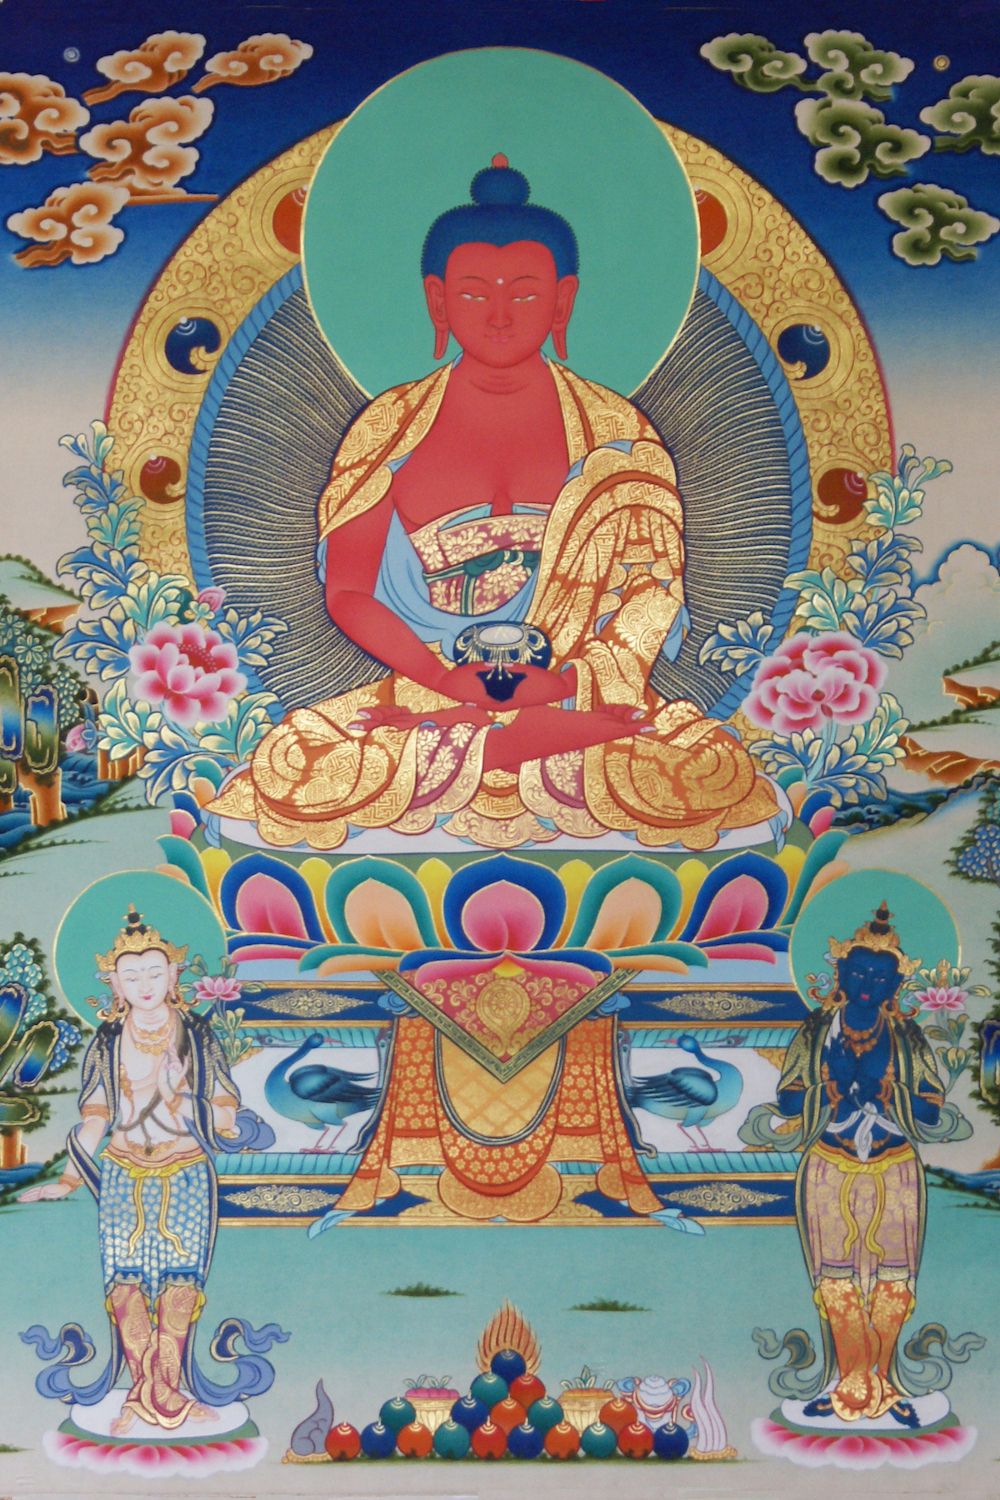 Amitabha Buddha (Downloadable Photo)